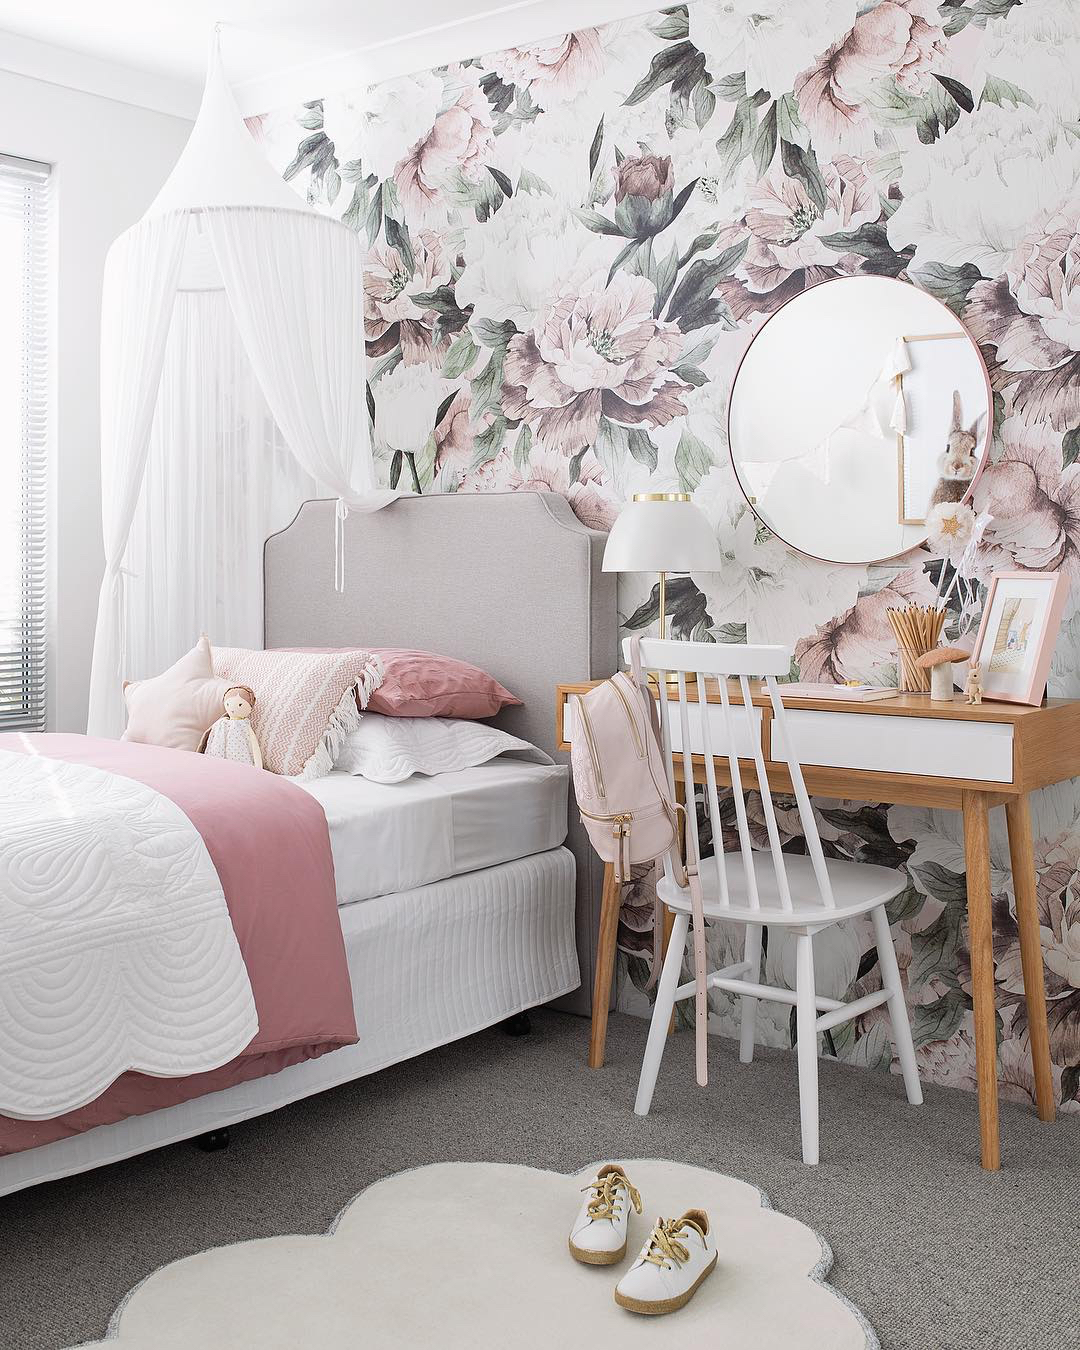 Queen Anne Wallpaper  /   Photography + Interior design  Tarina Wood, Oh Eight Oh Nine